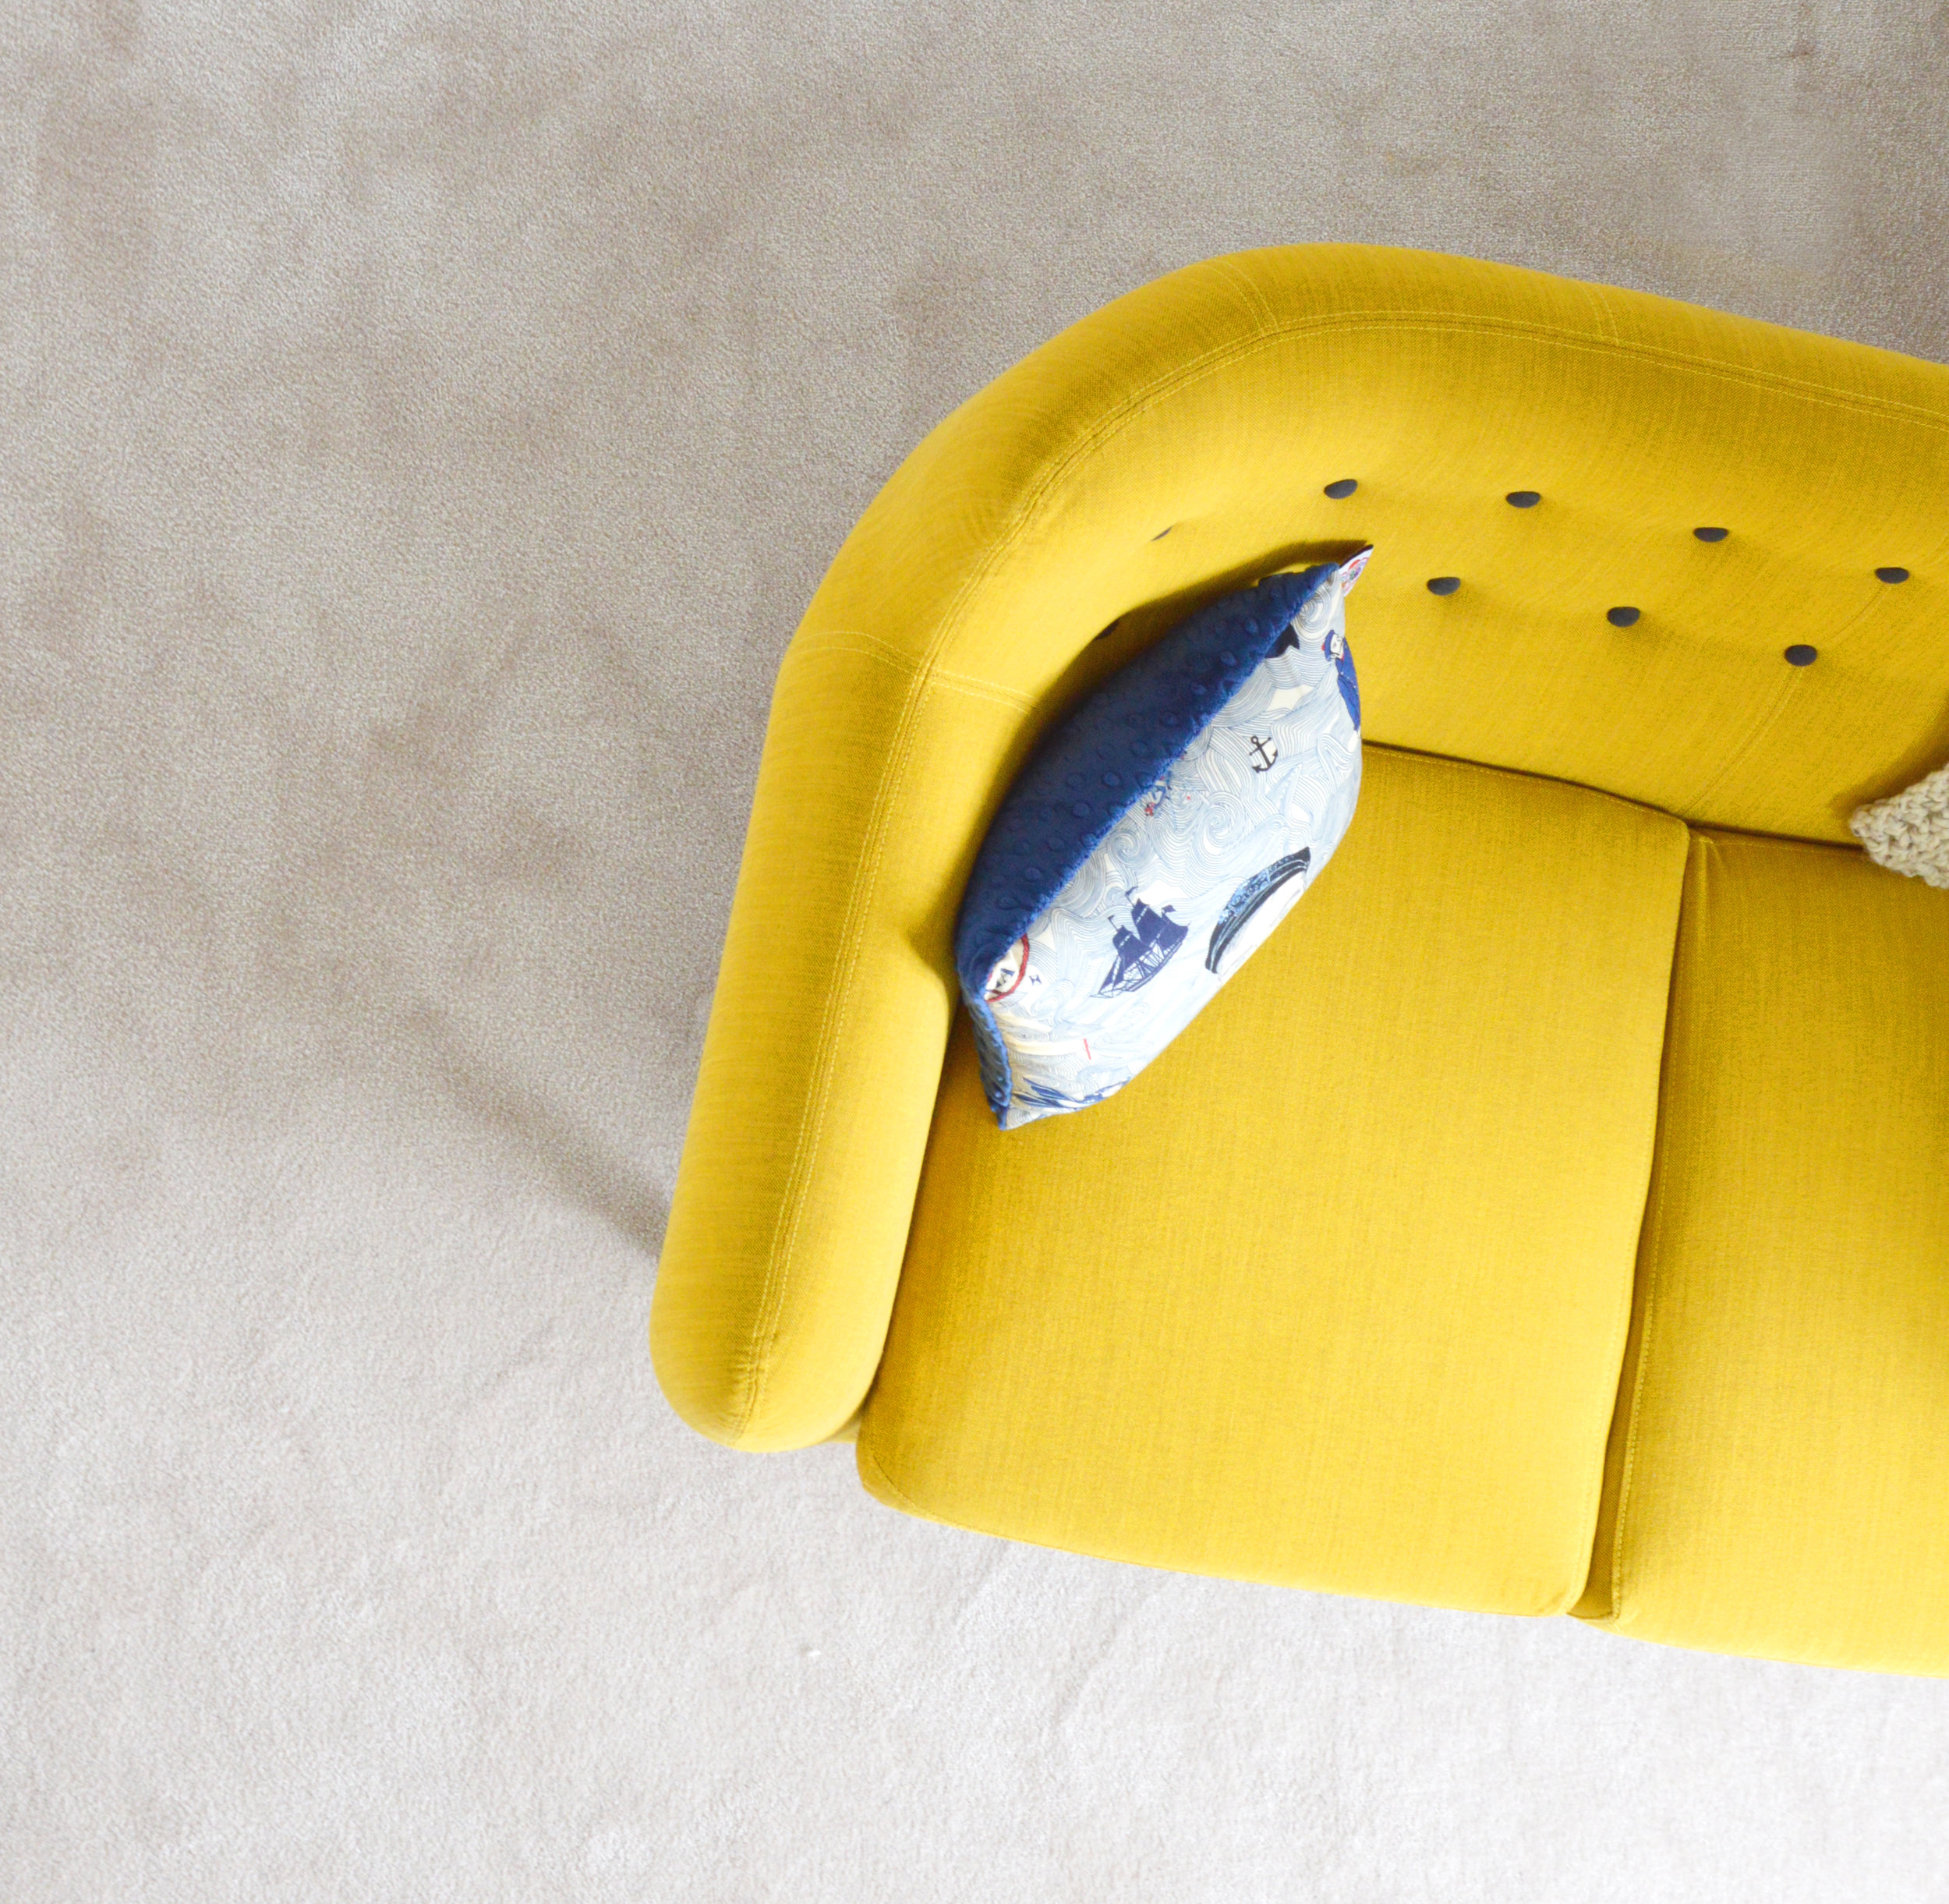 Upholstery - Breathe new life into your treasured furniture